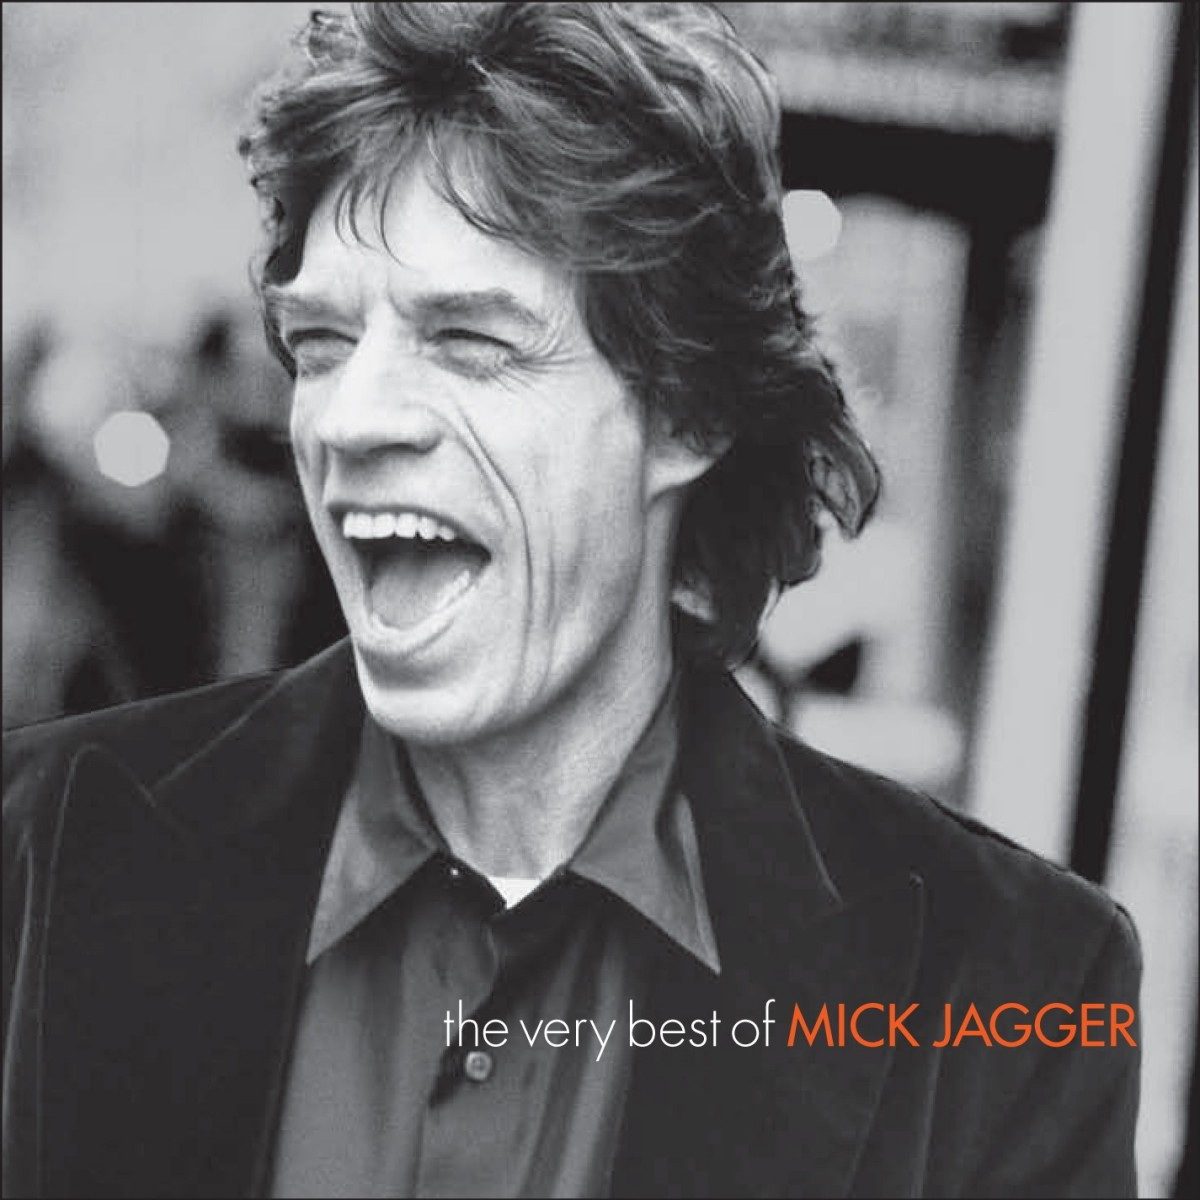 Mick Jagger - The Very Best Of CD - CDESP 305